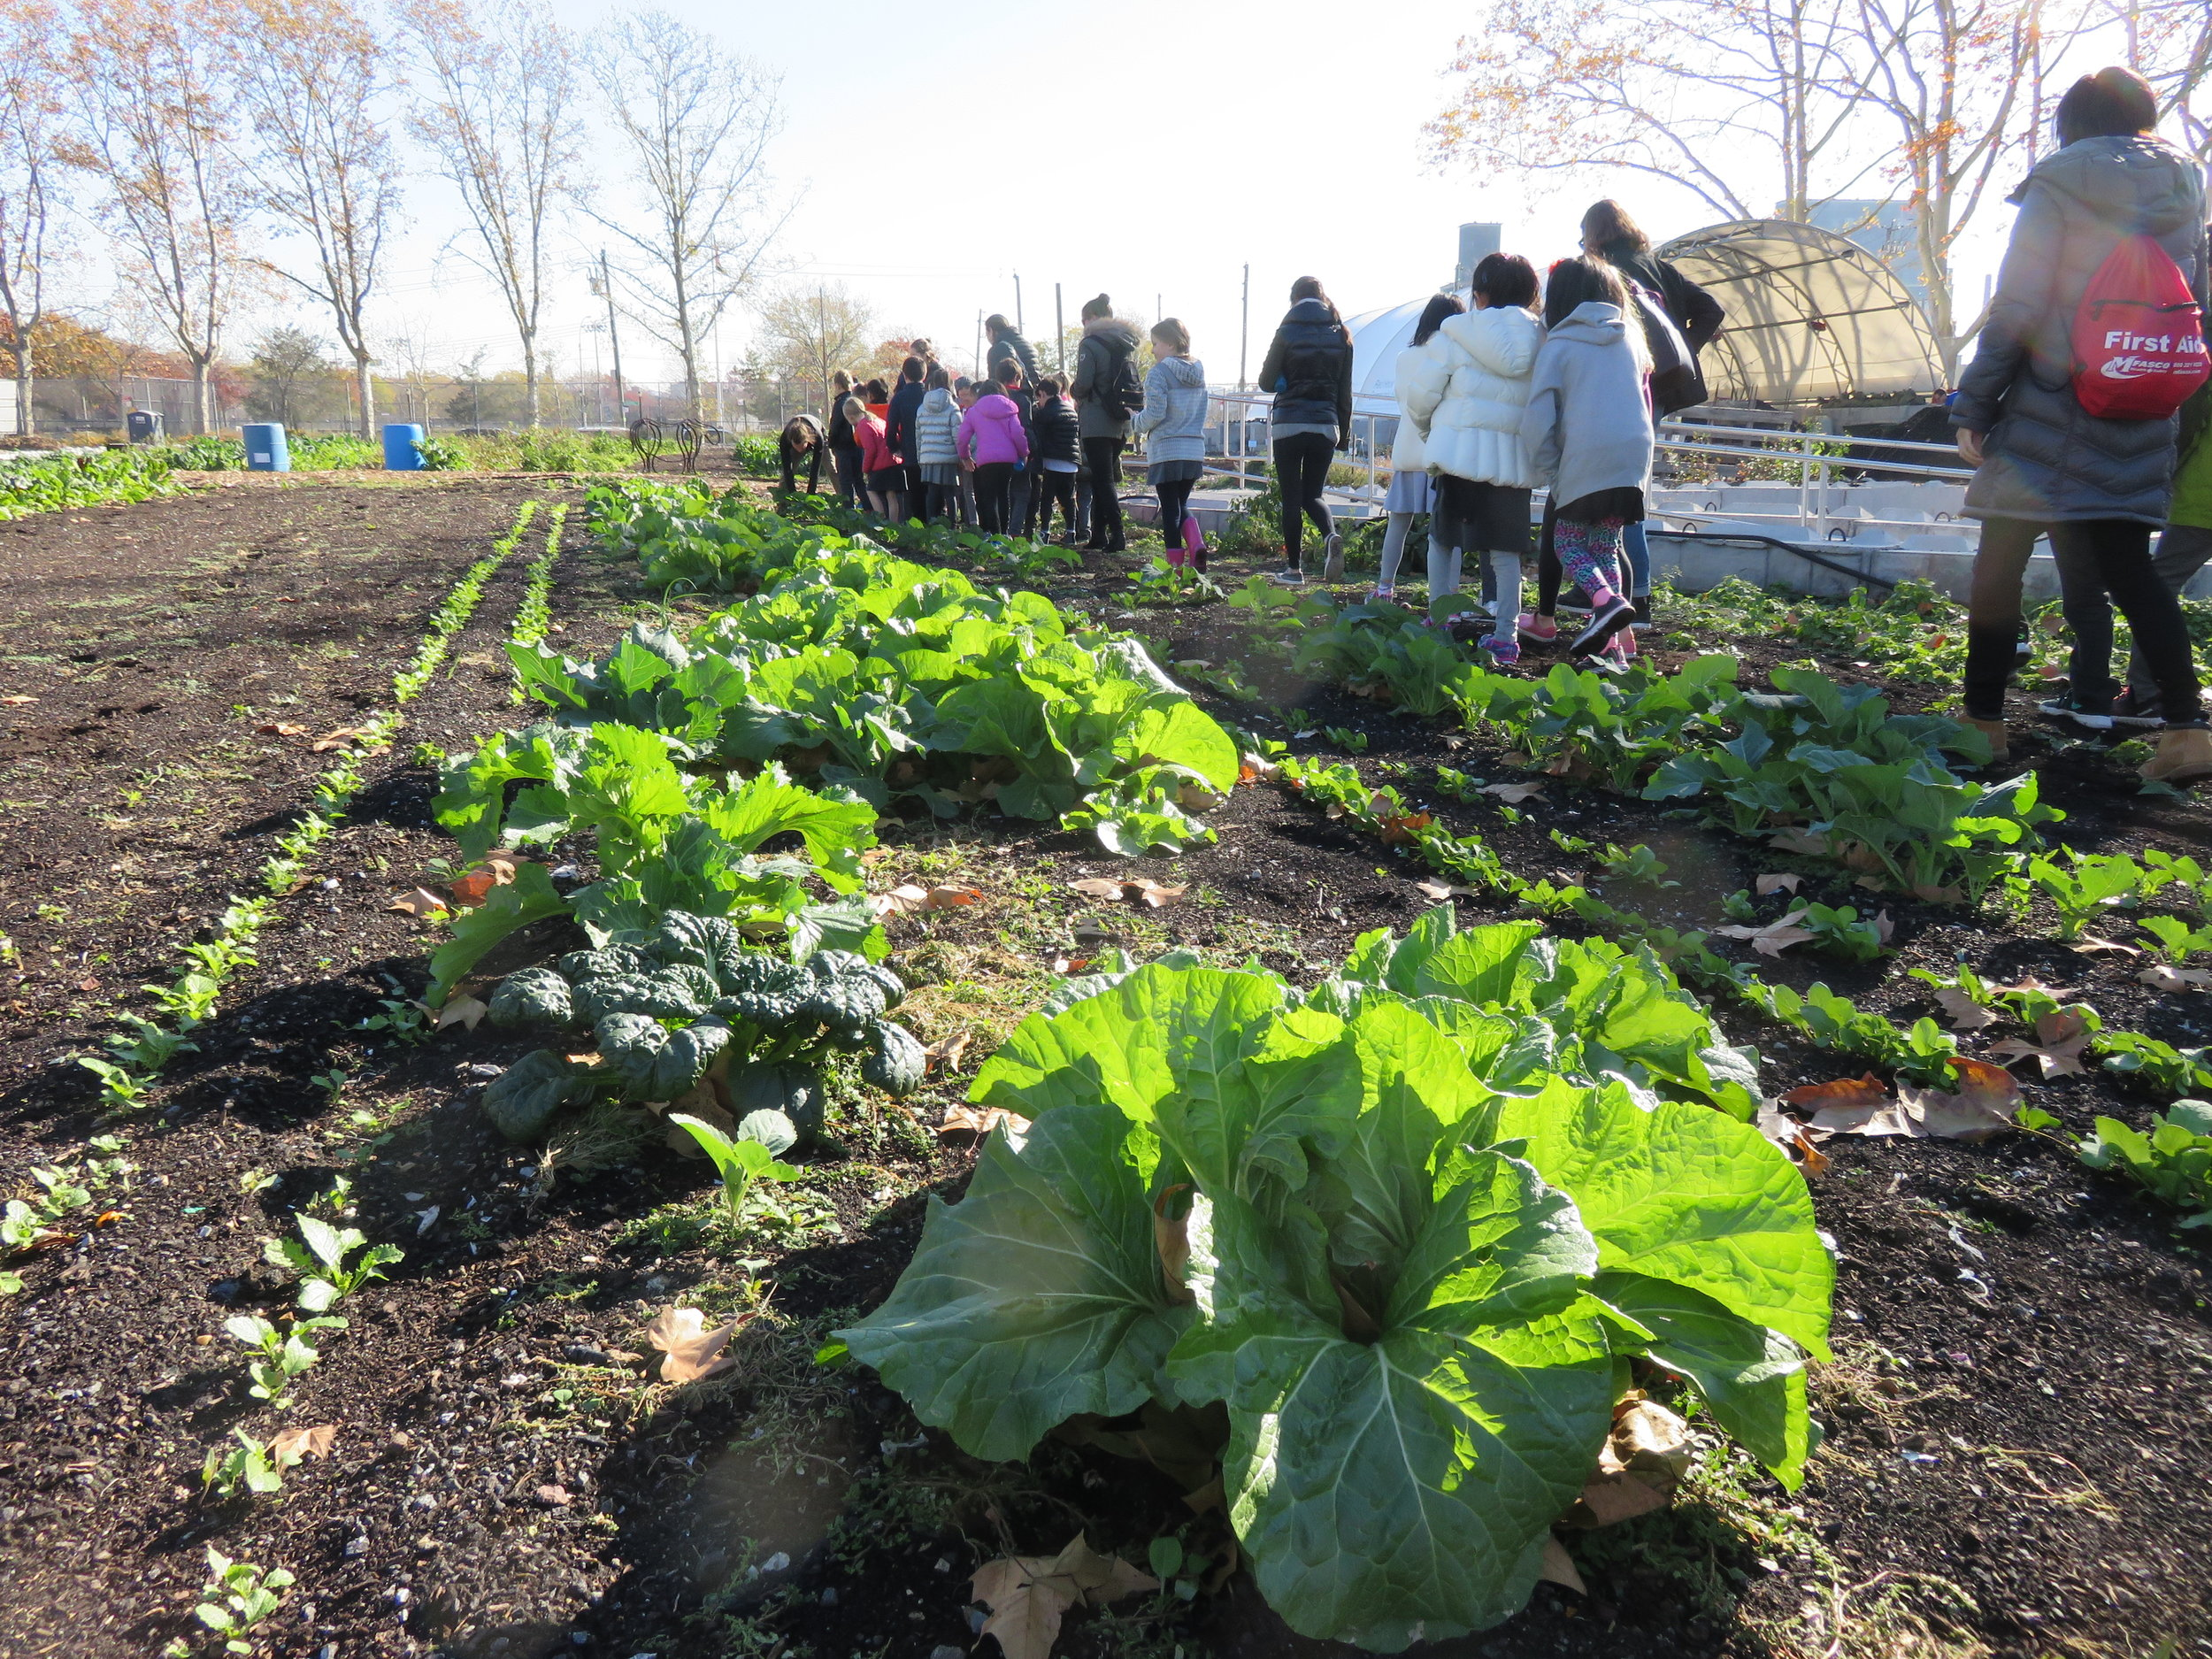 Students from the Brooklyn New School checking out our Napa Cabbages on a school visit!